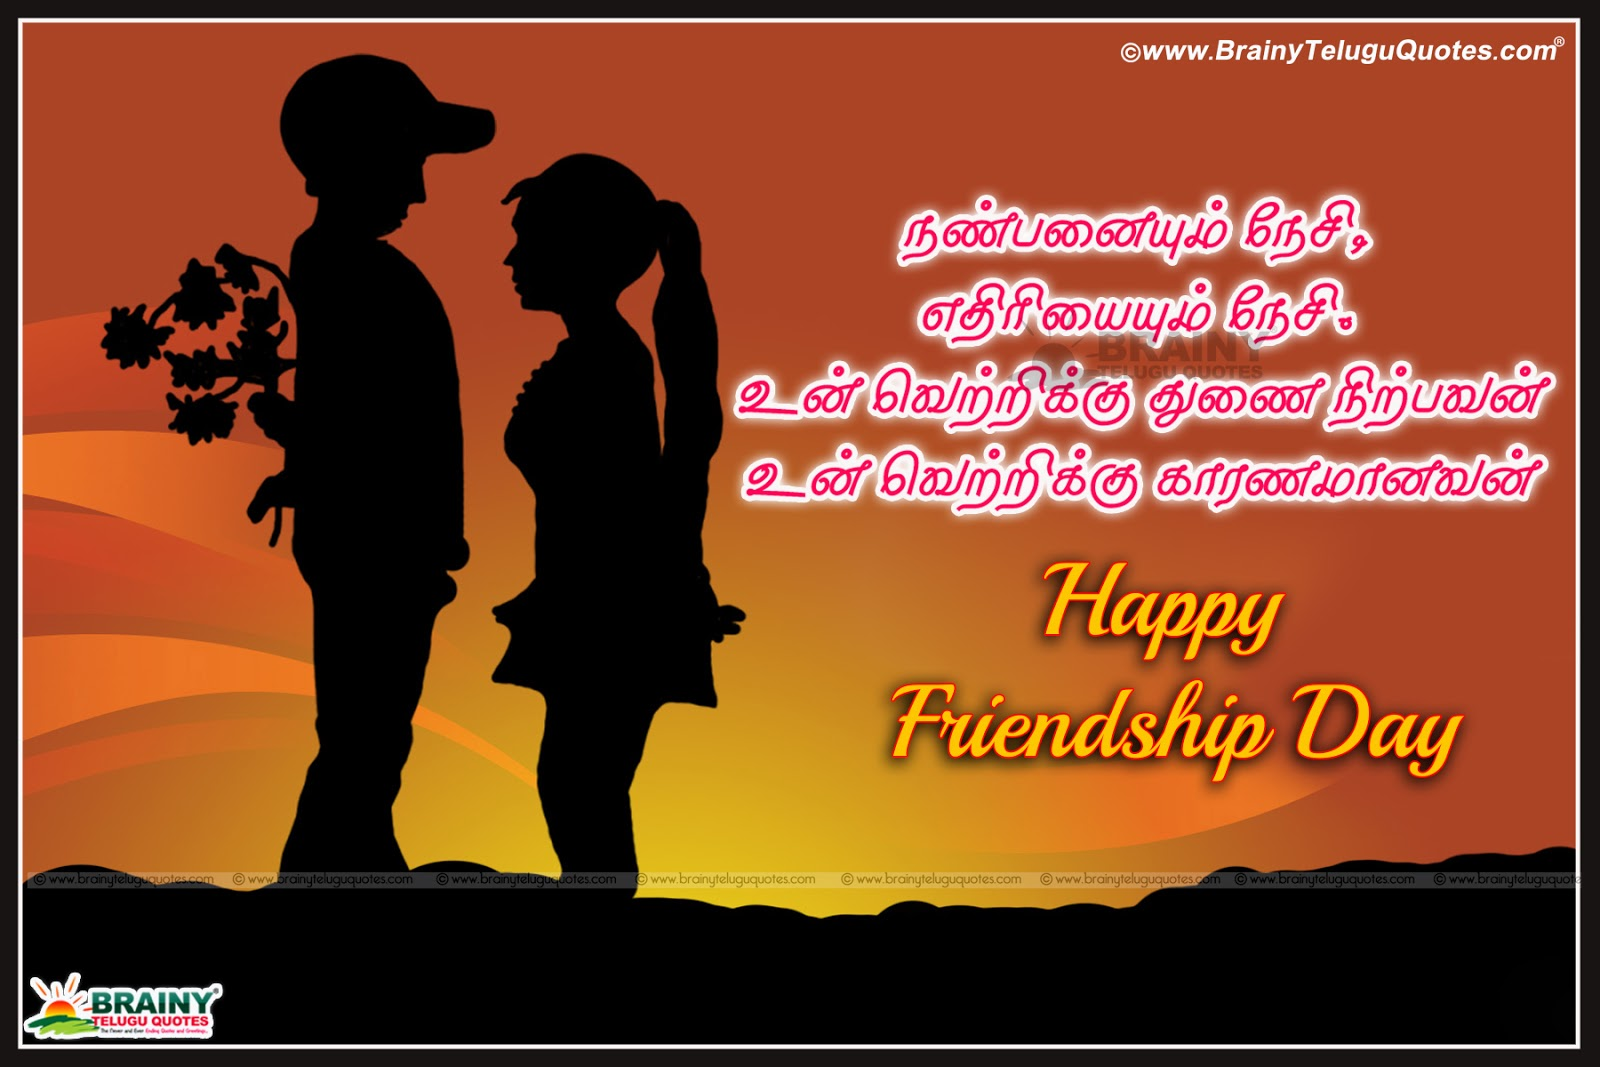 Best Friendship Day Tamil Kavithai Images hd wallpapers ...